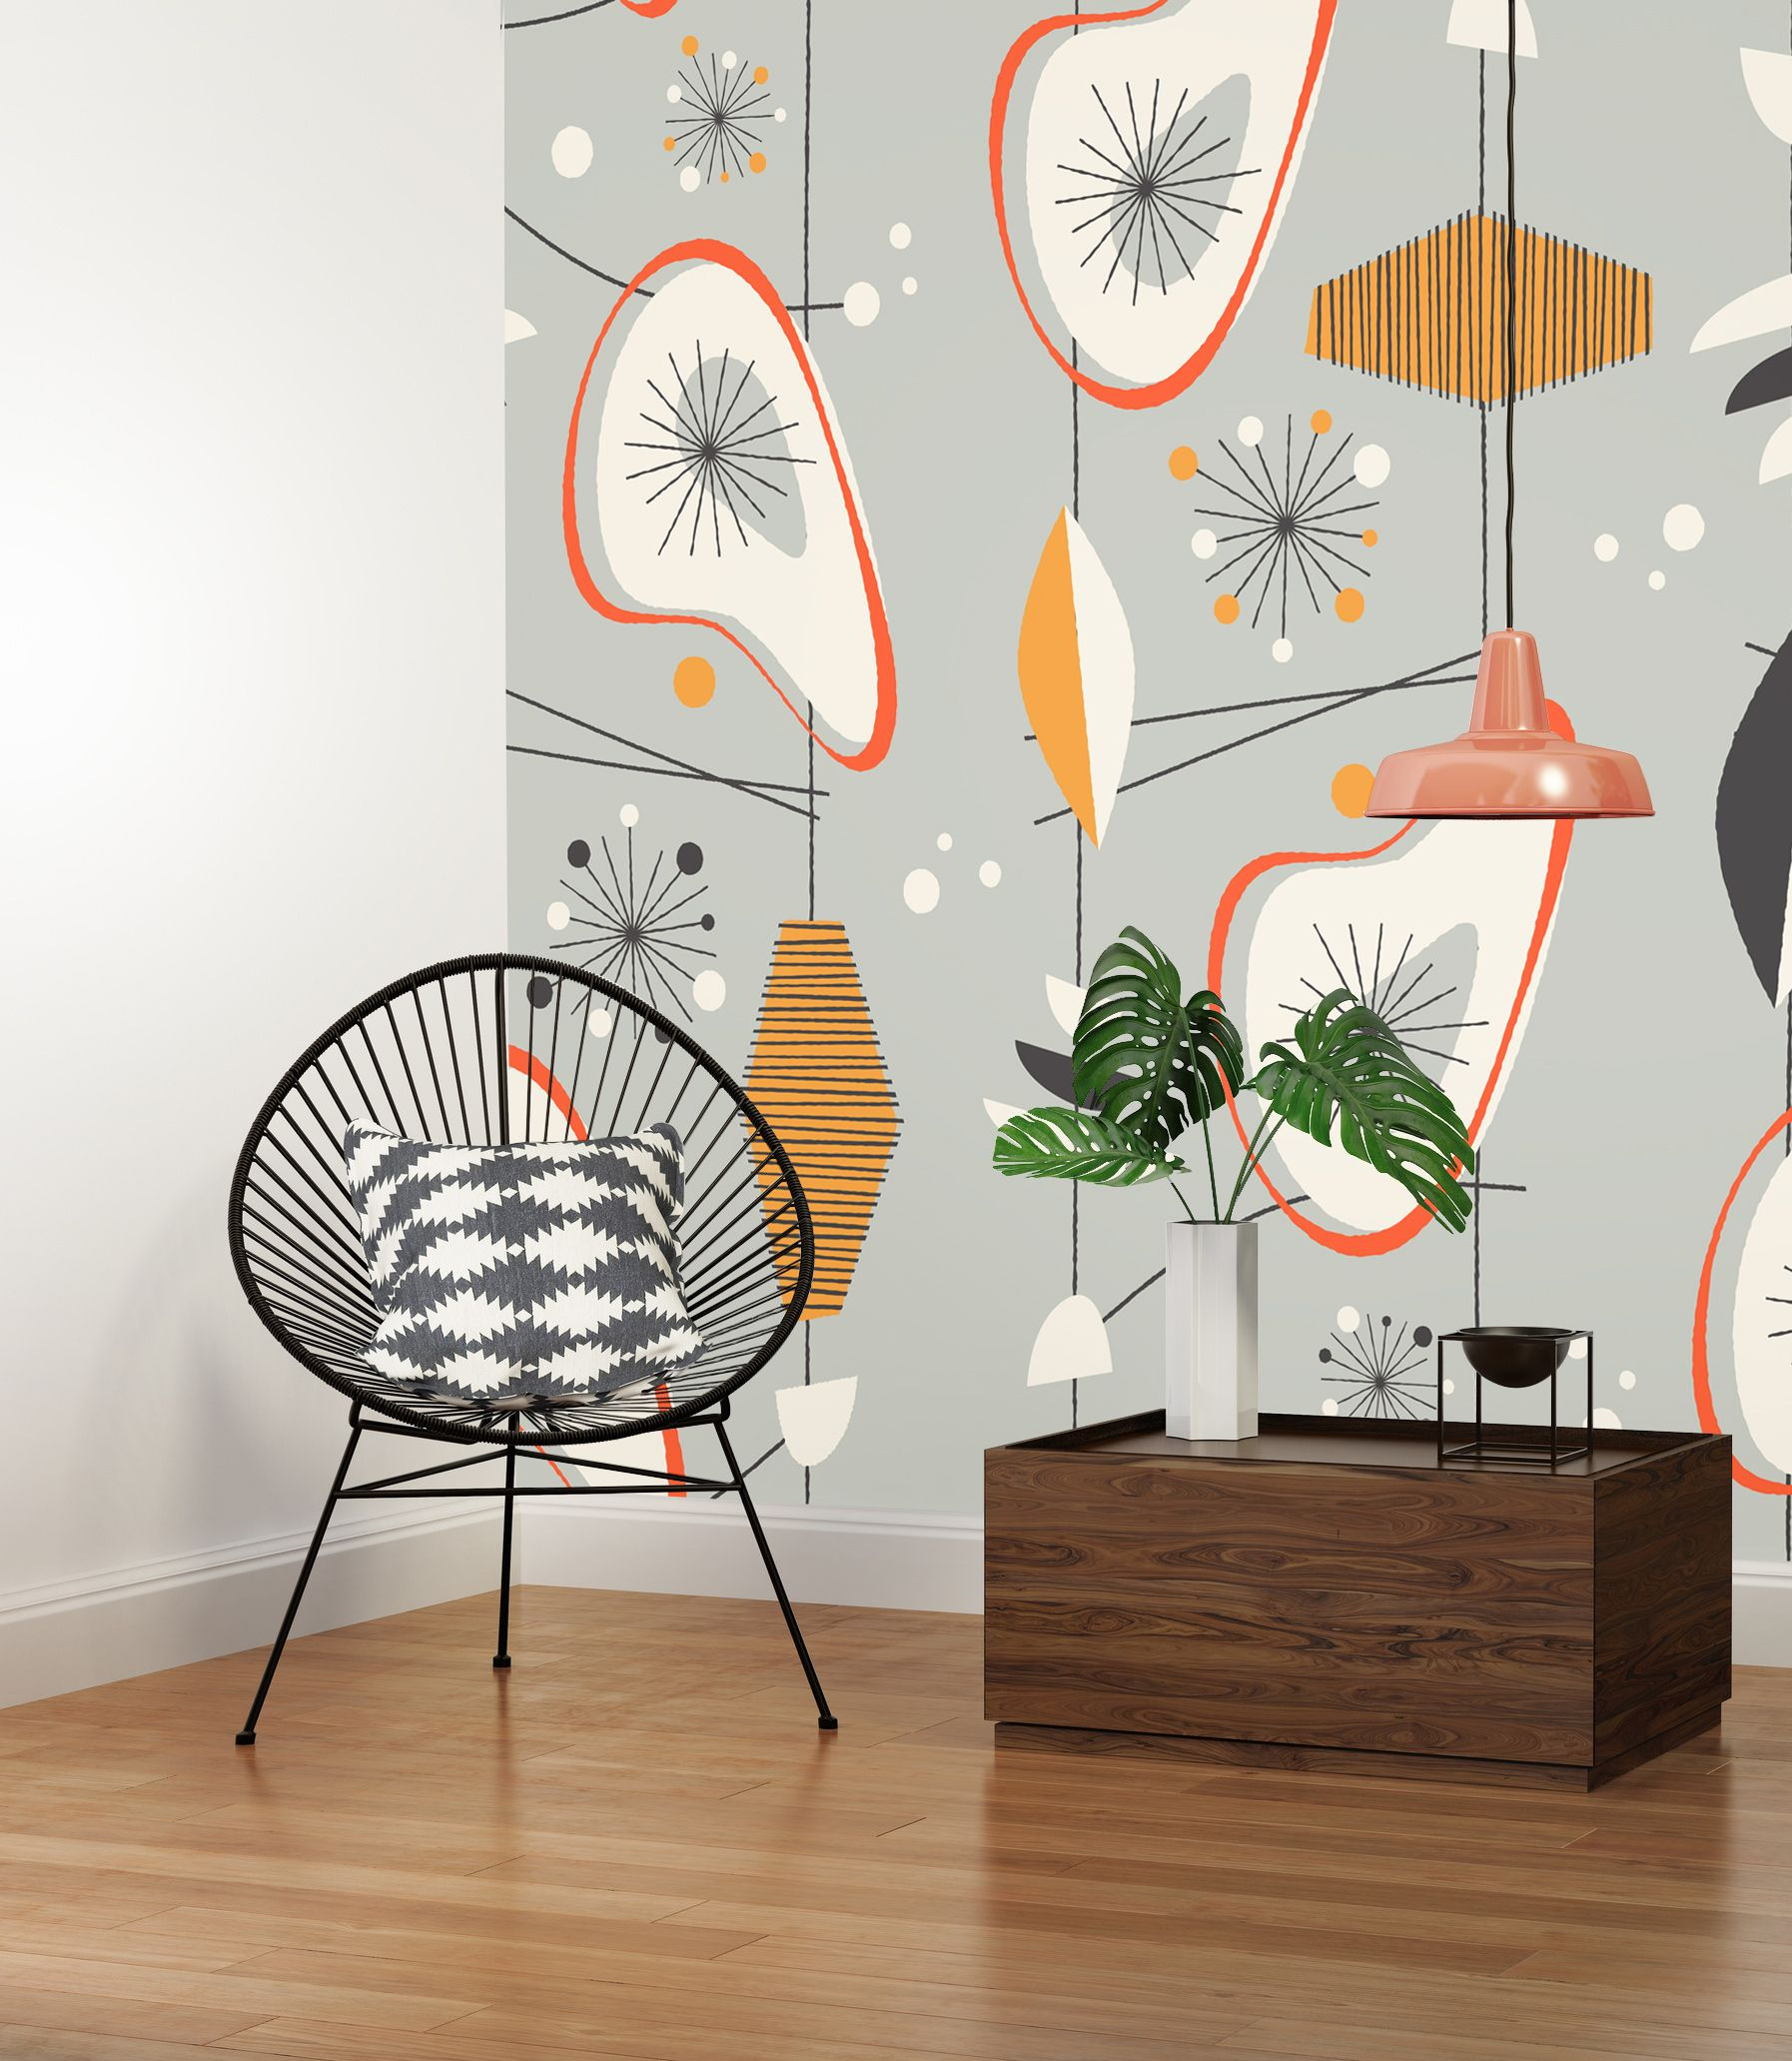 10 Ways To Get A Mid Century Style In Your Home Midcentury WallpaperMid Modern WallpaperRetro